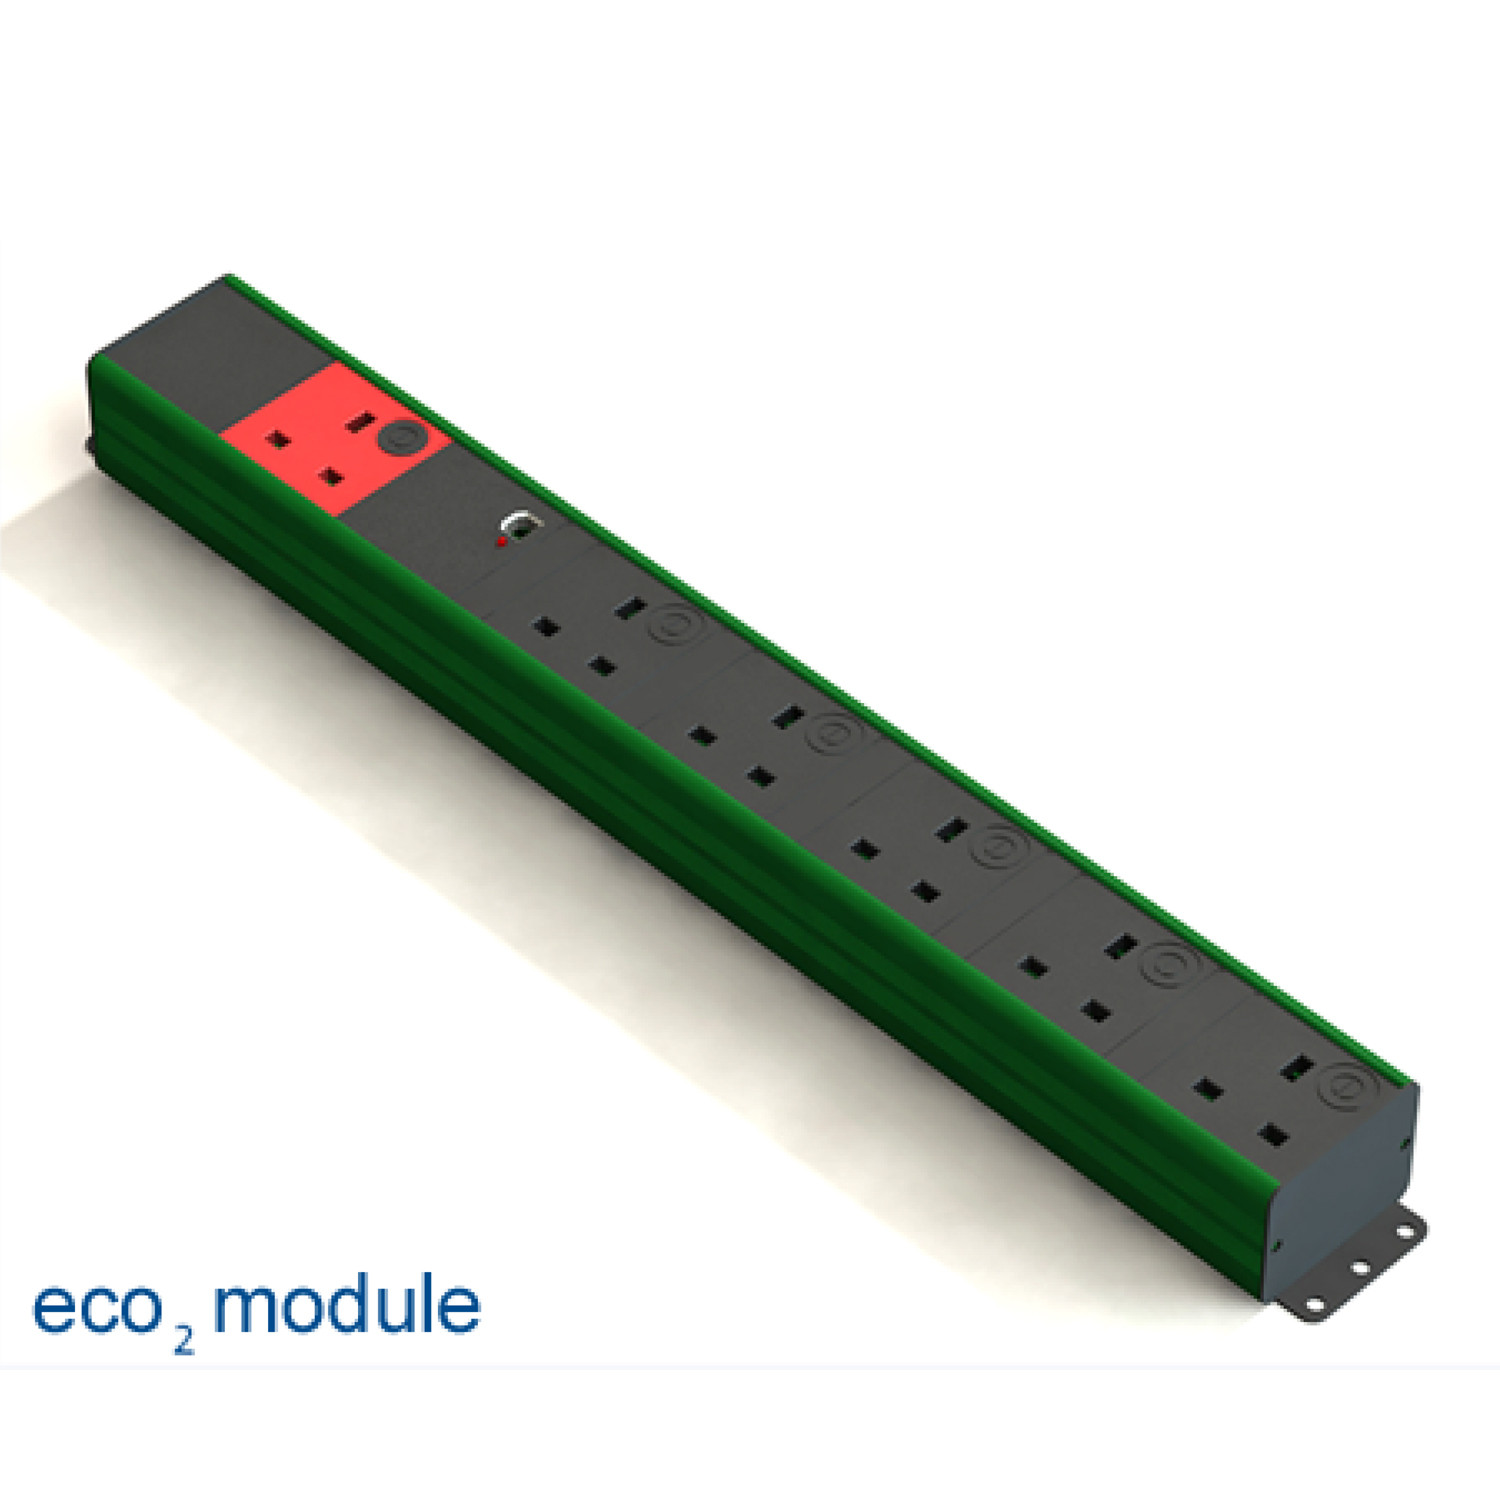 Eco2 Power Module by DPG Formfittings